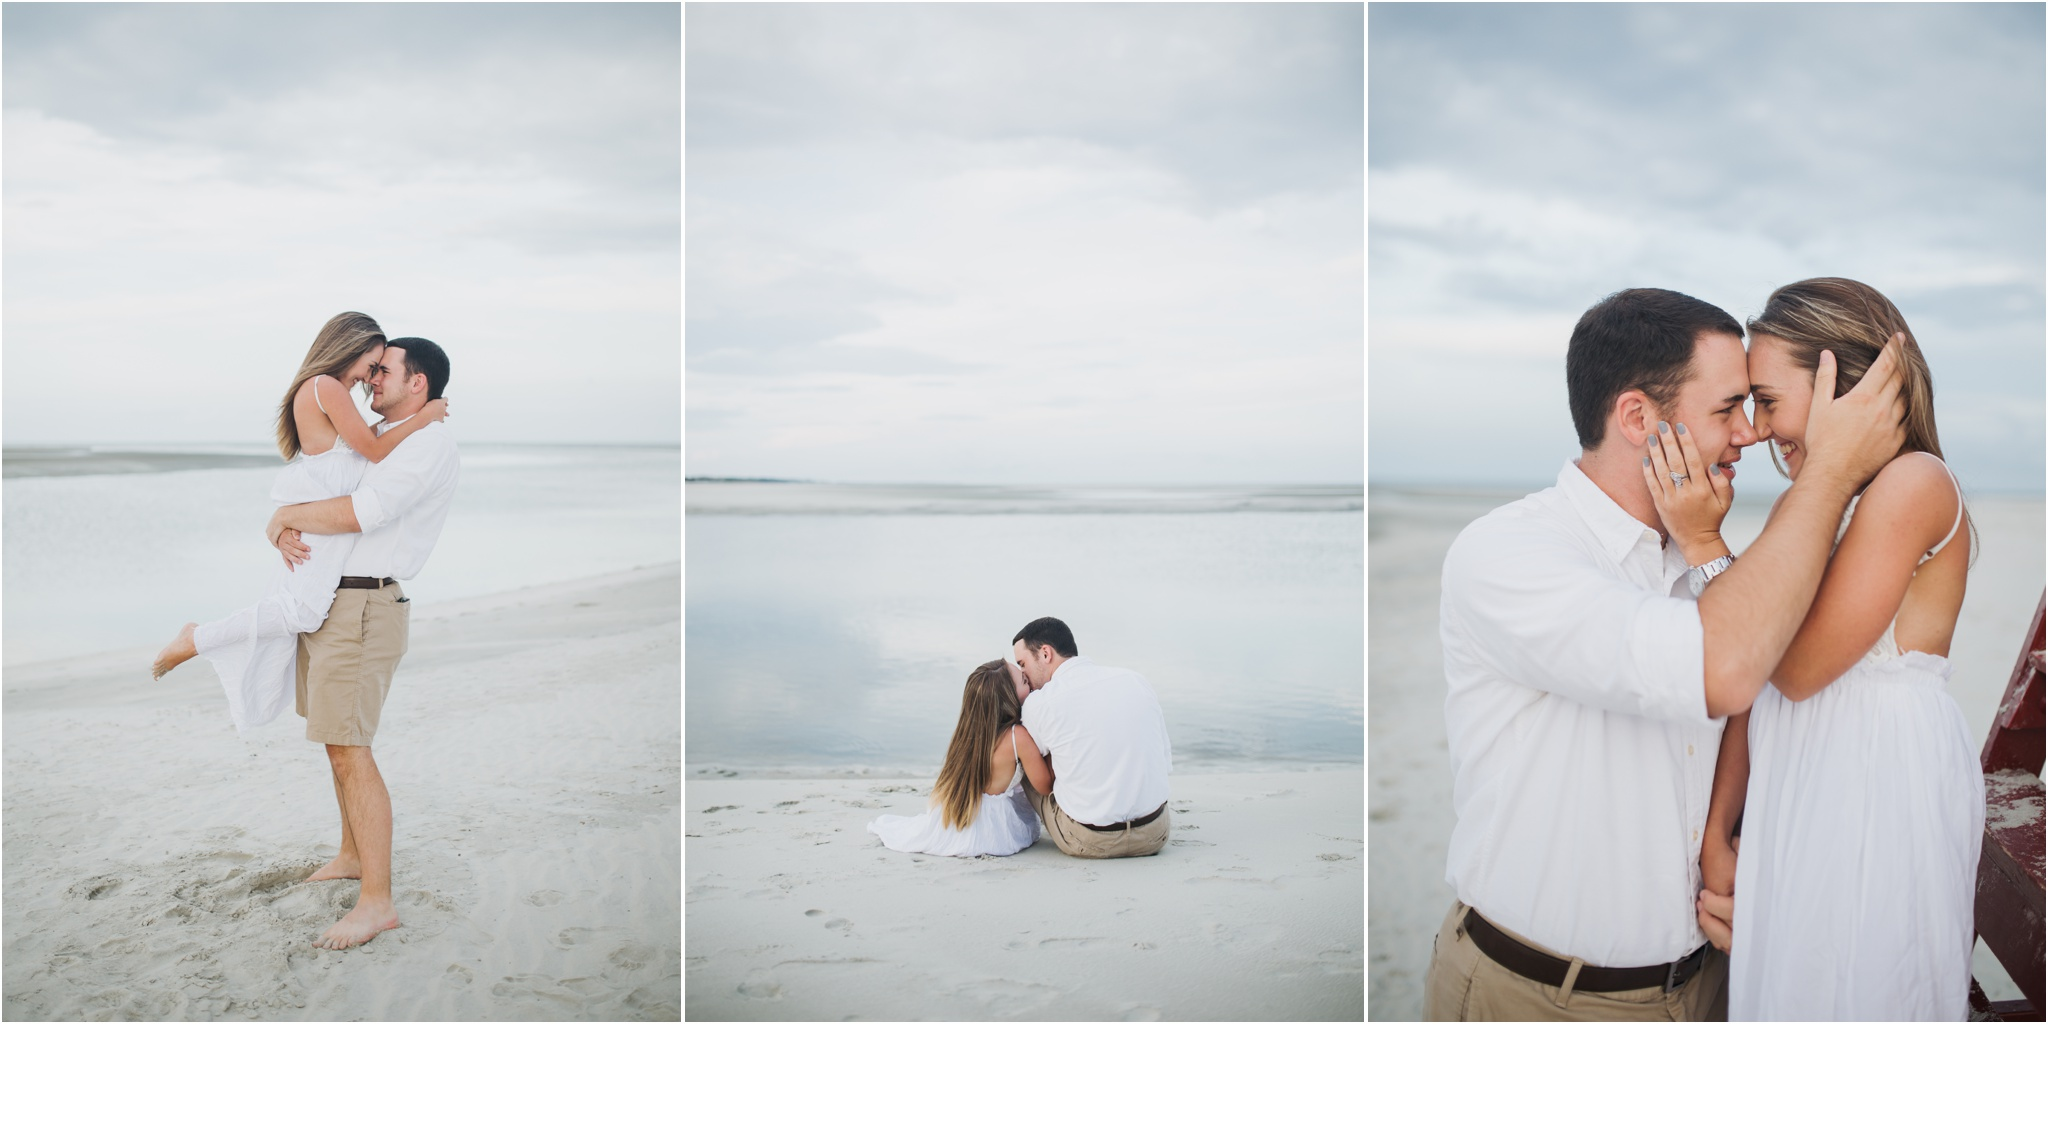 Rainey_Gregg_Photography_St._Simons_Island_Georgia_California_Wedding_Portrait_Photography_1455.jpg